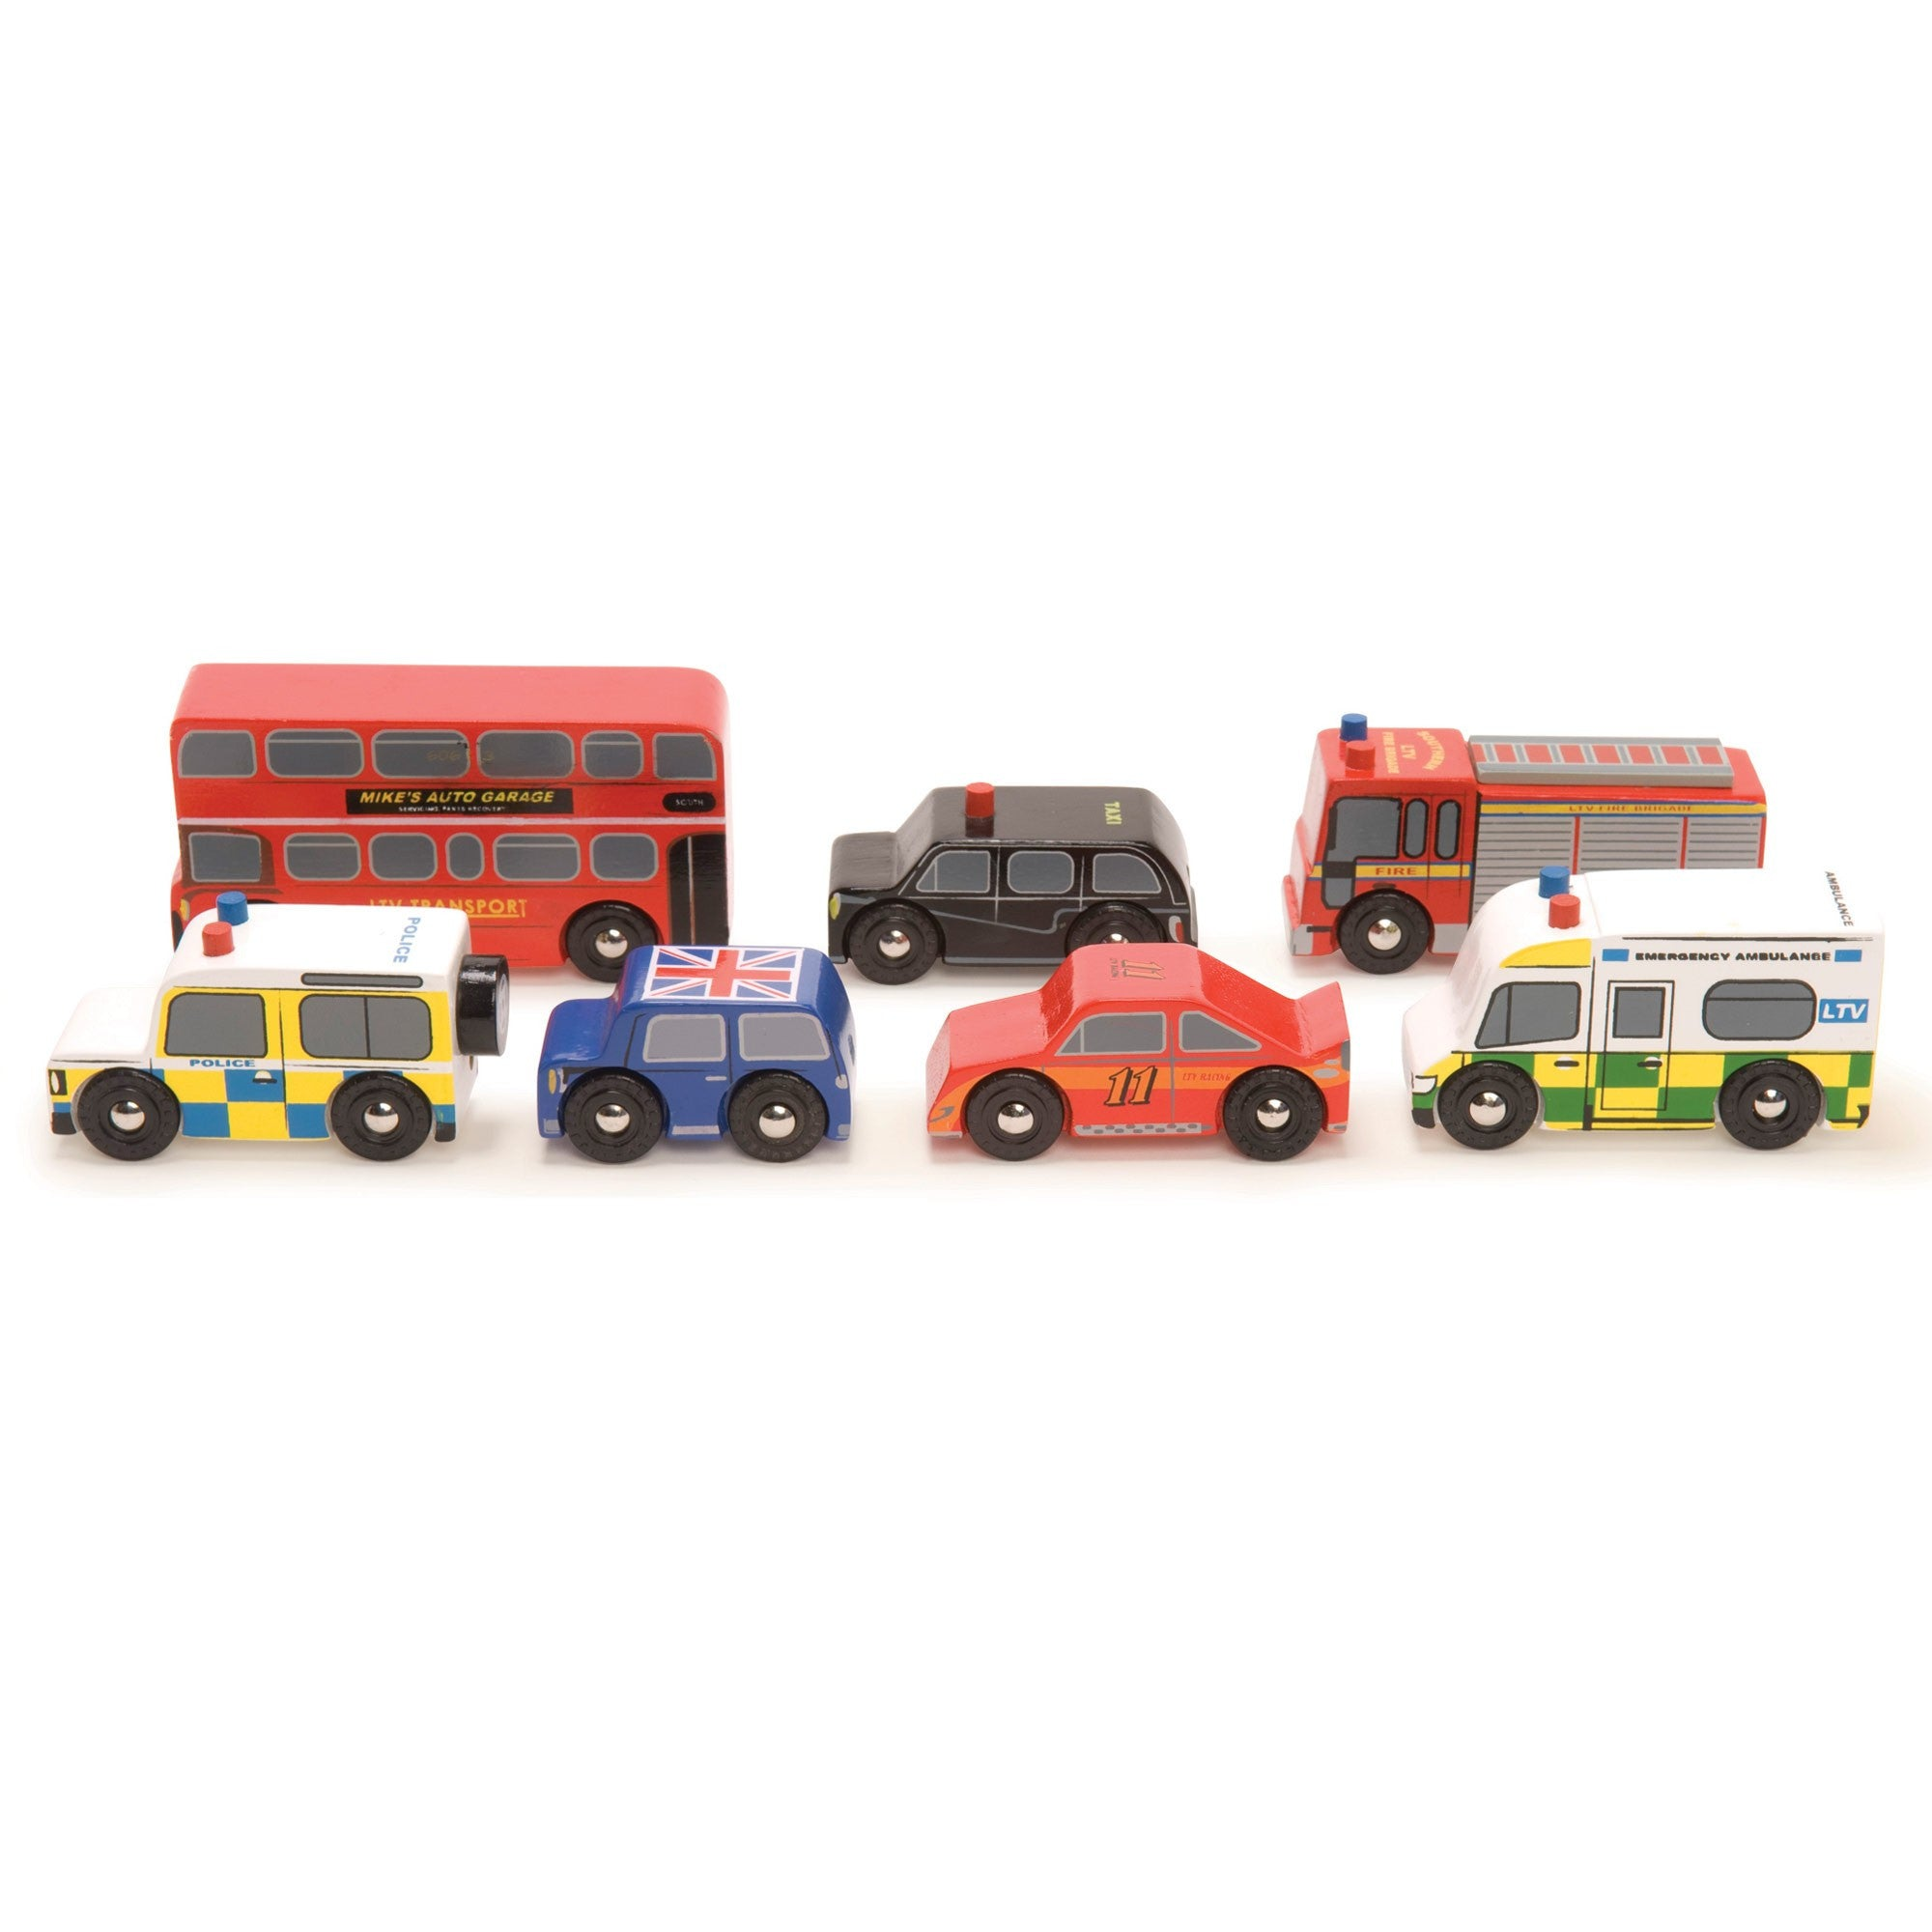 Le Toy Van London Car Set Le Toy Van Toy Cars at Little Earth Nest Eco Shop